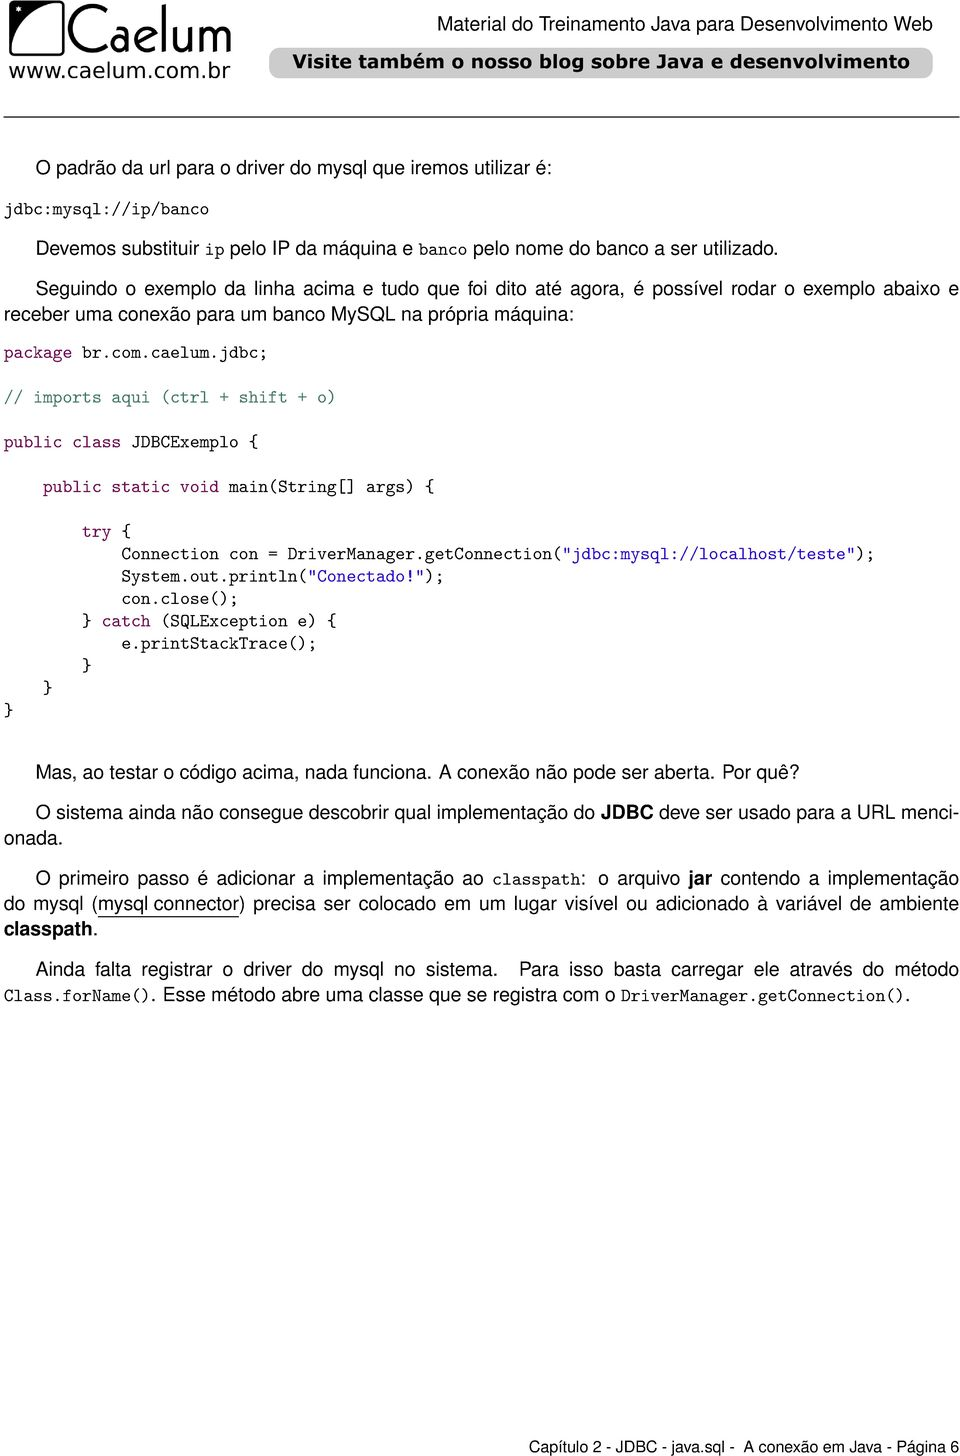 "jdbc; // imports aqui (ctrl + shift + o) public class JDBCExemplo { public static void main(string[] args) { try { Connection con = DriverManager.getConnection(""jdbc:mysql://localhost/teste""); System."